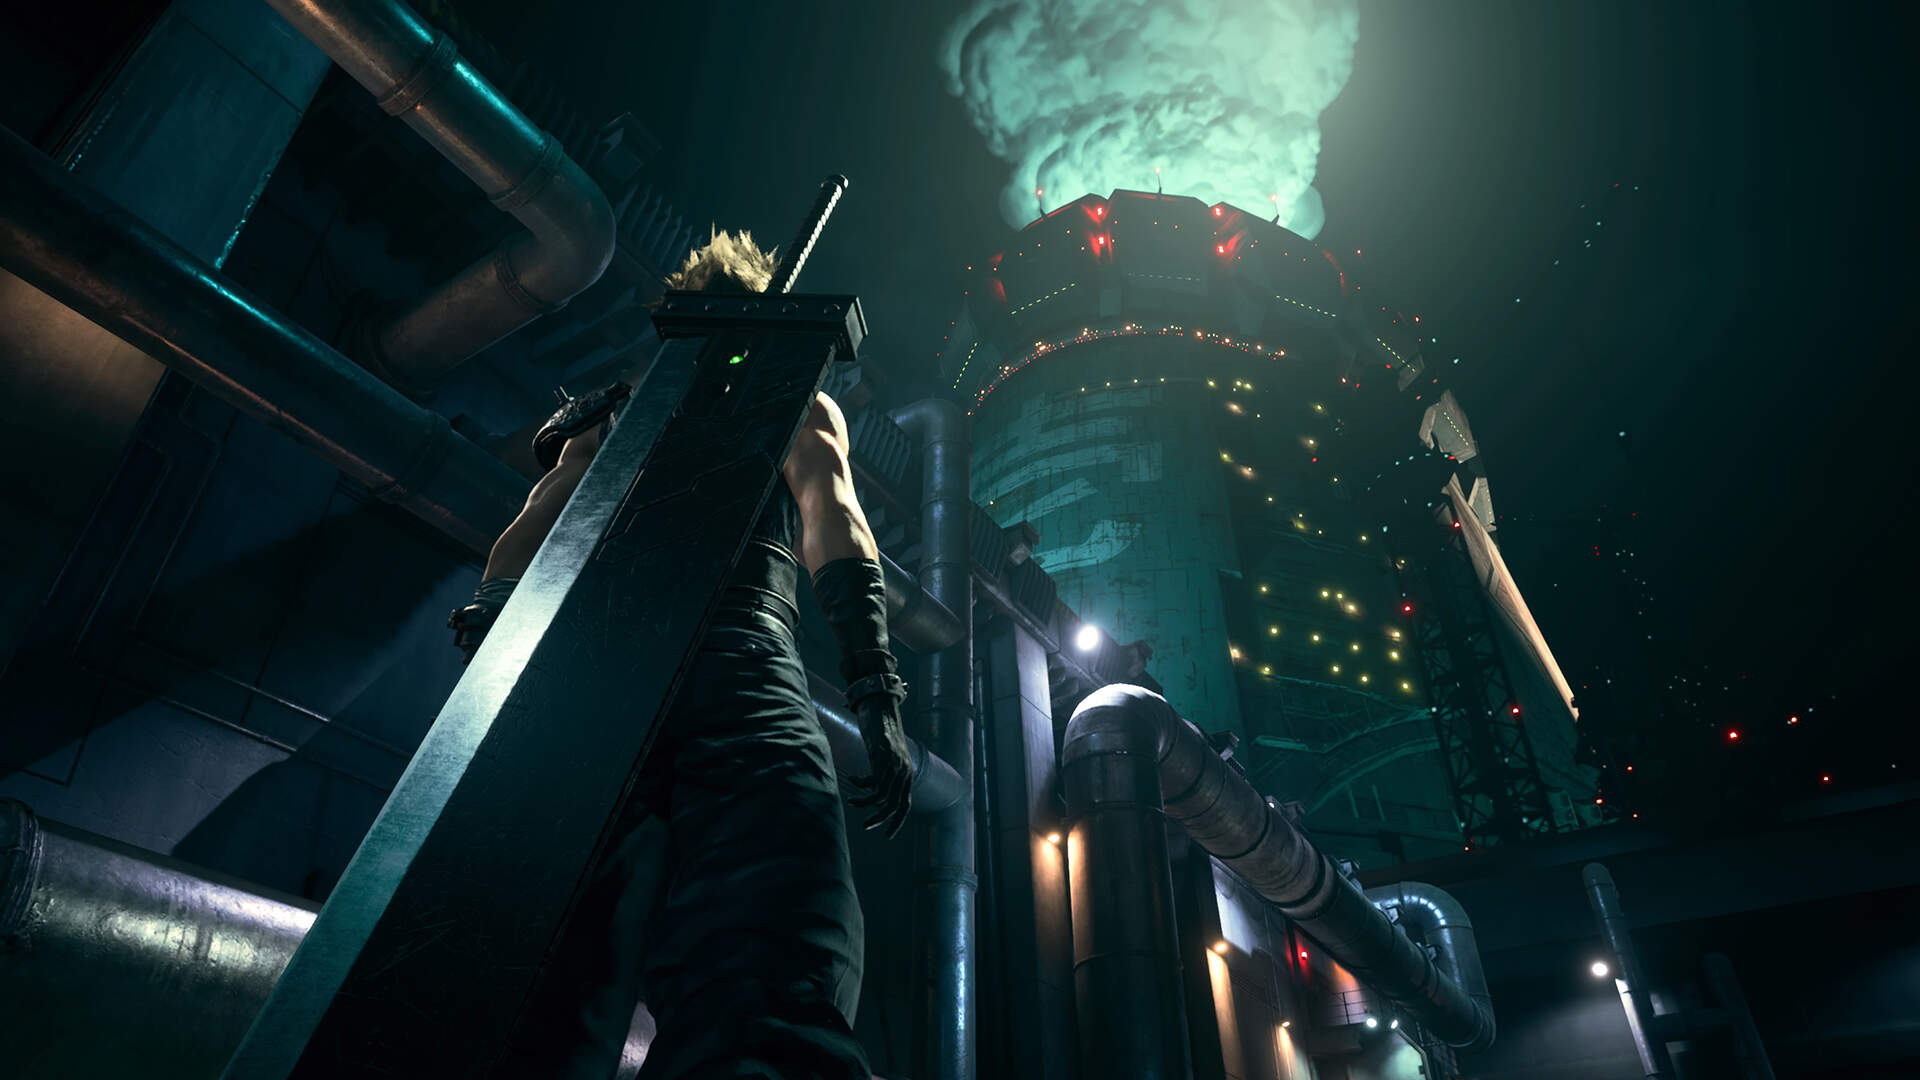 Final Fantasy 7 Remake Sales Outpacing 15's Sales After Three Weeks in Japan